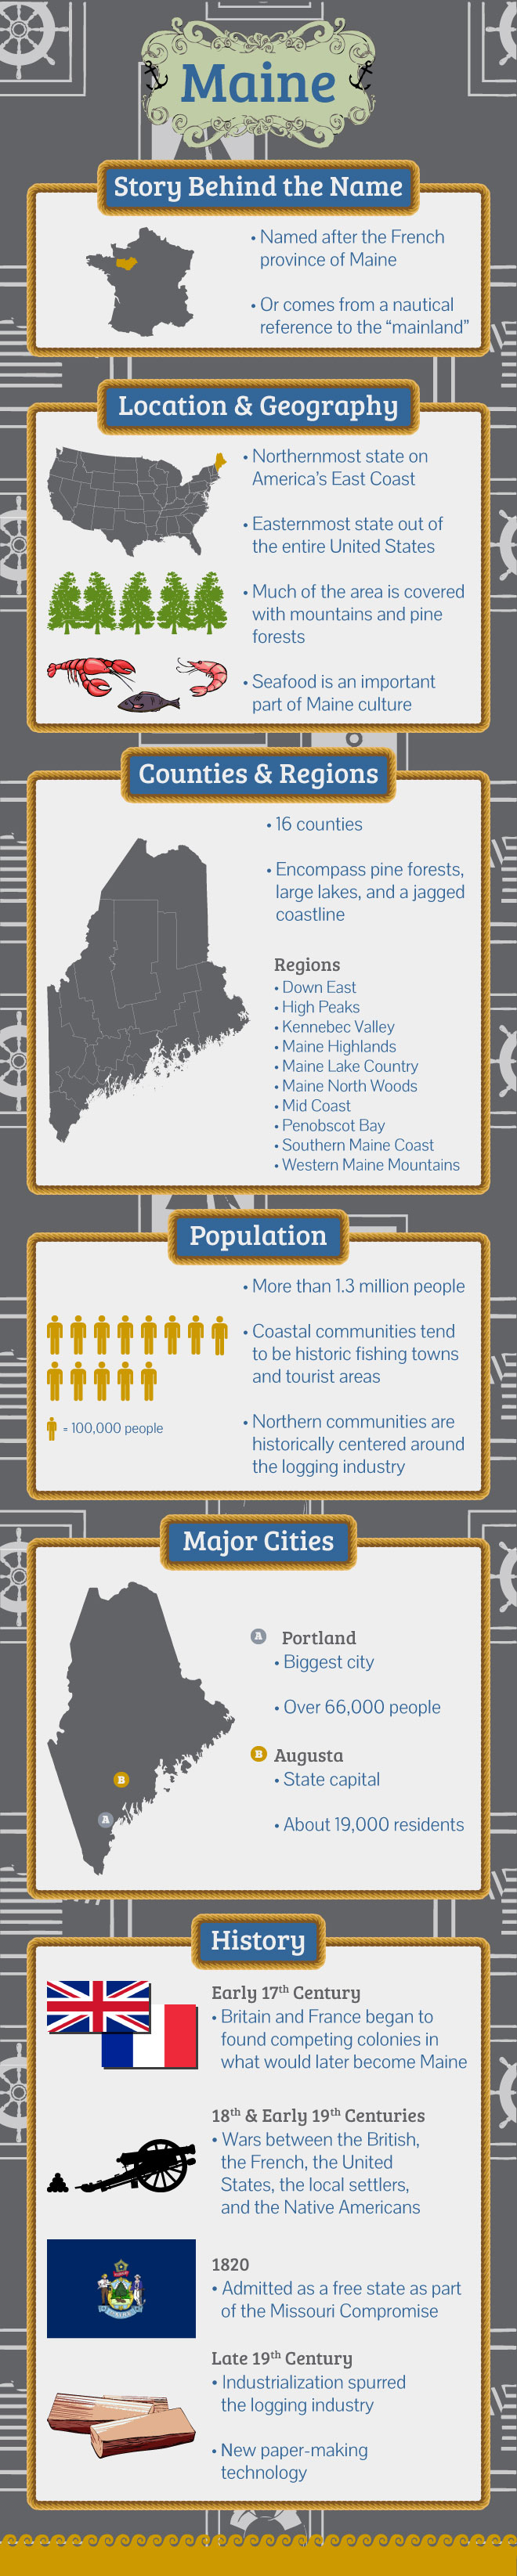 Infographic Of Maine Facts Not Sure Why Bangor Isn 39 T